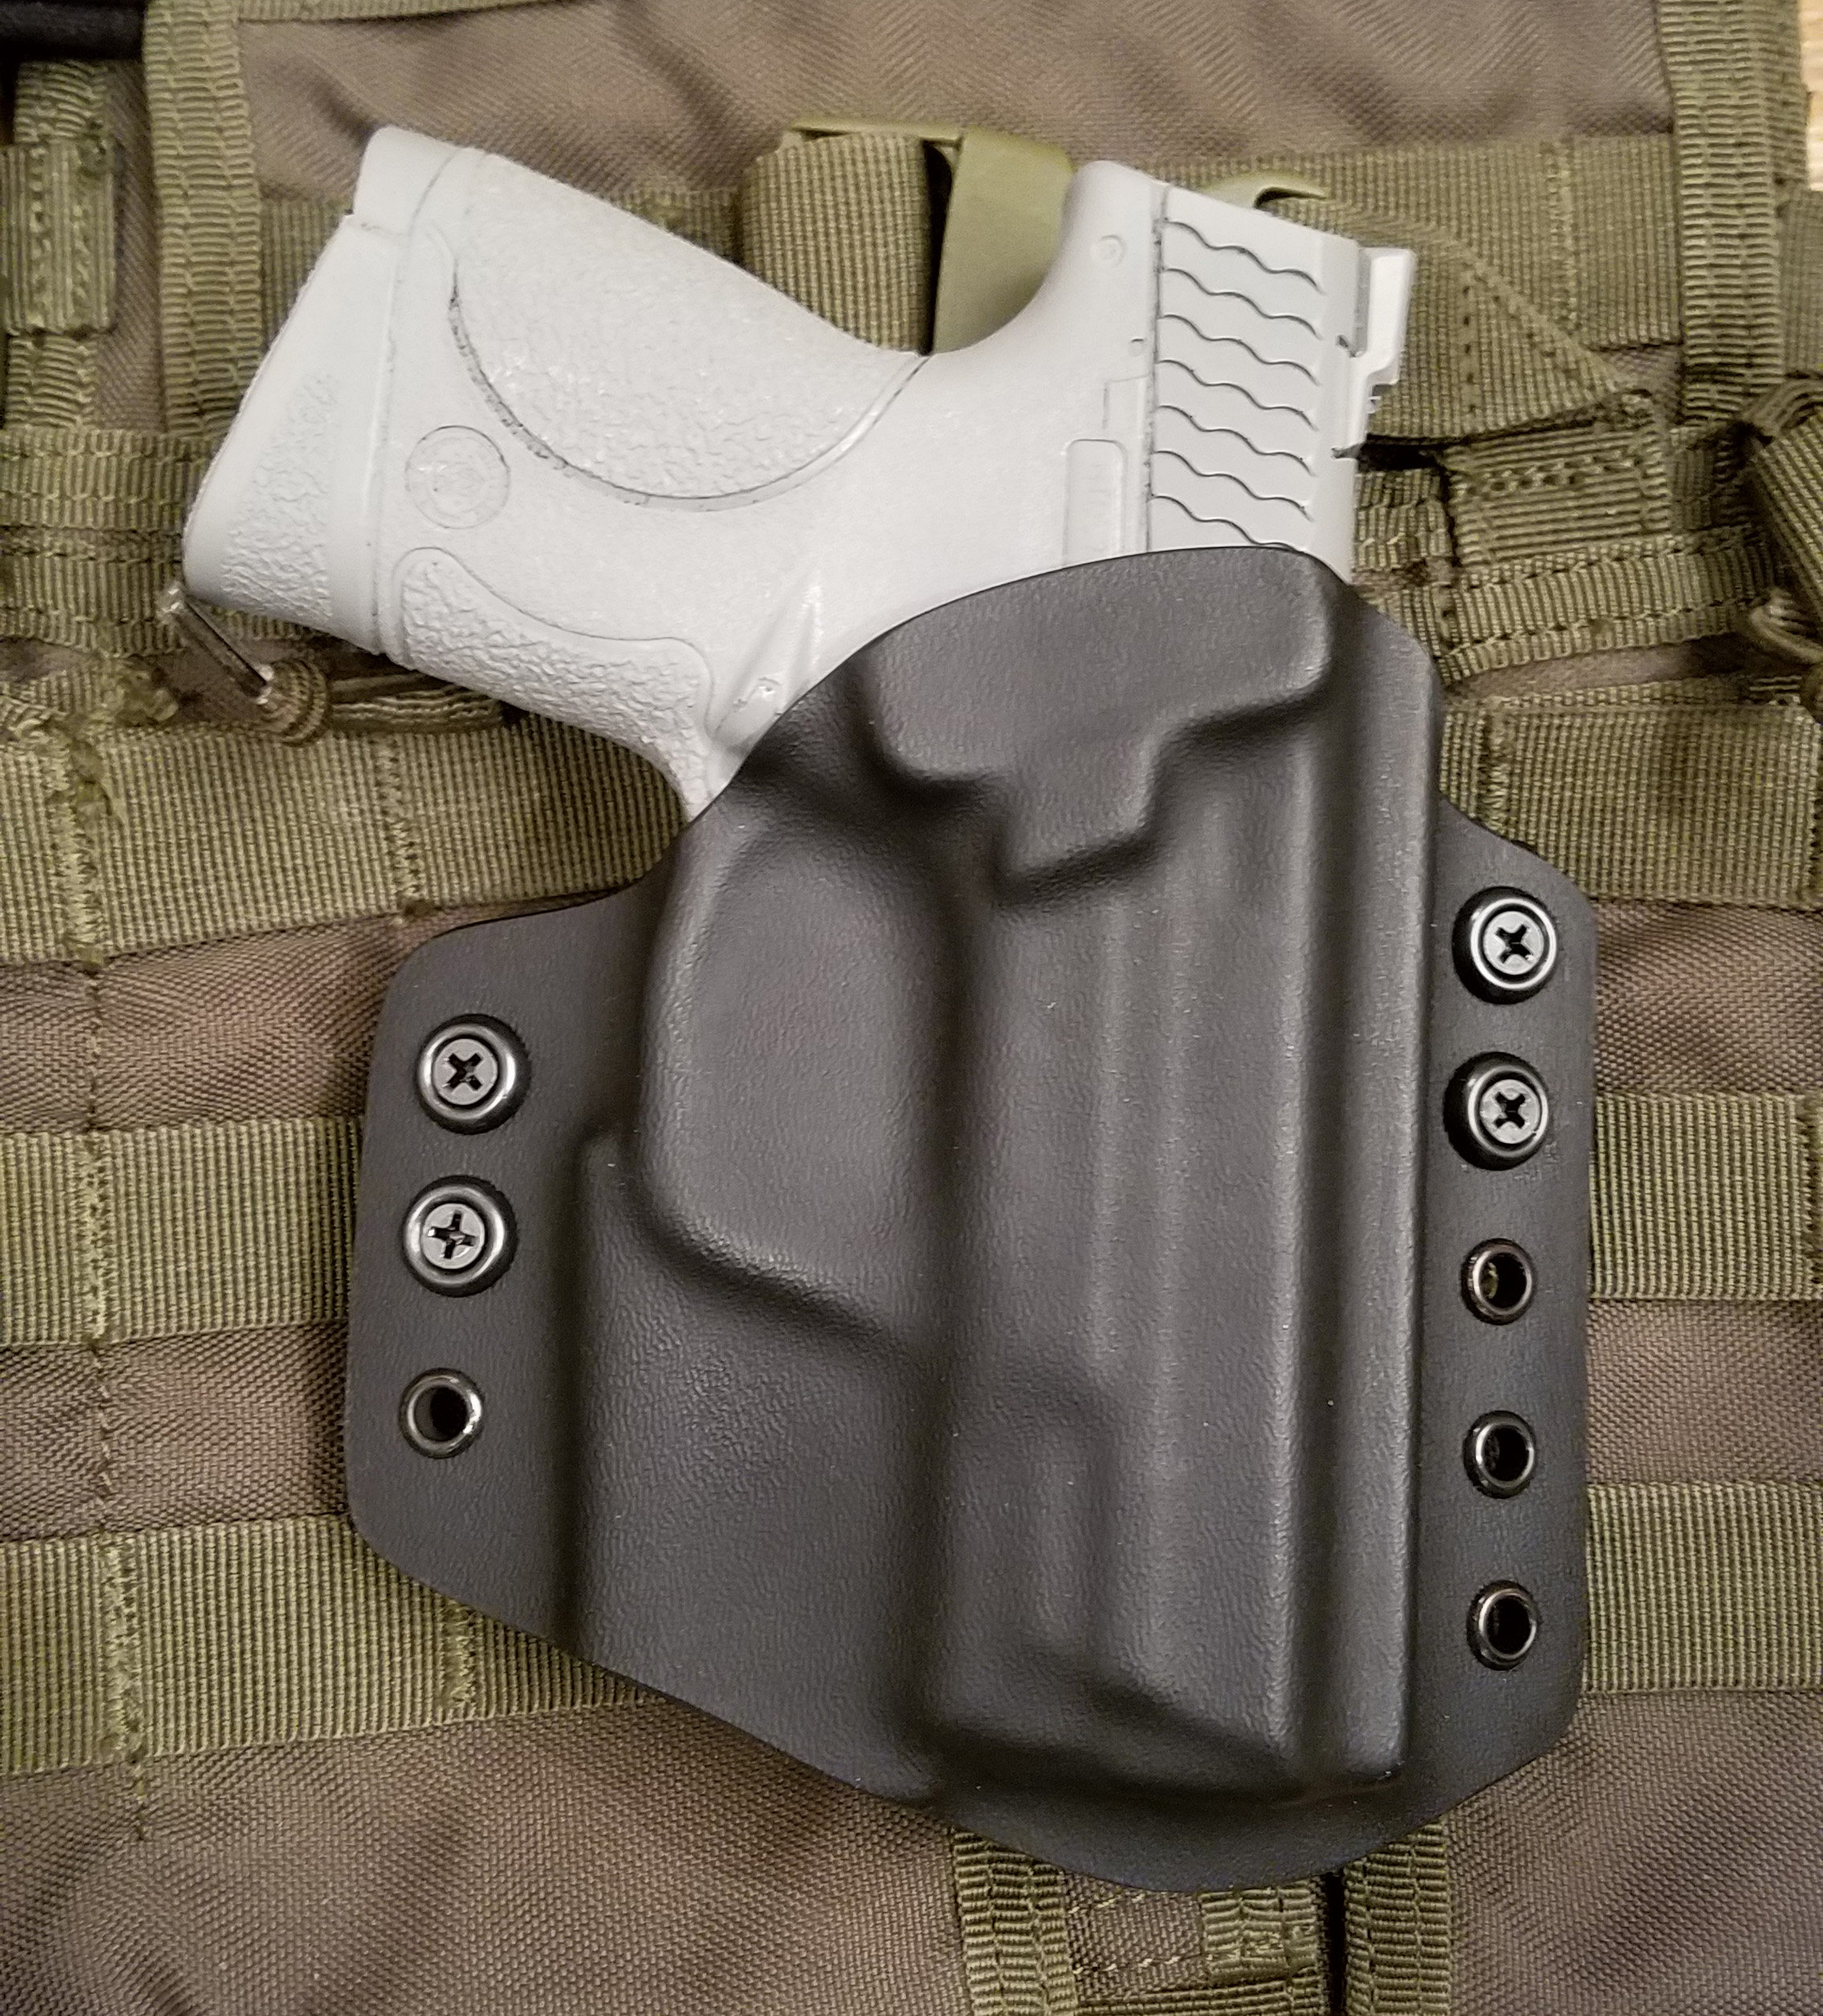 Holster for Smith & Wesson M&P Compact, 9c/40c, OWB, Kydex